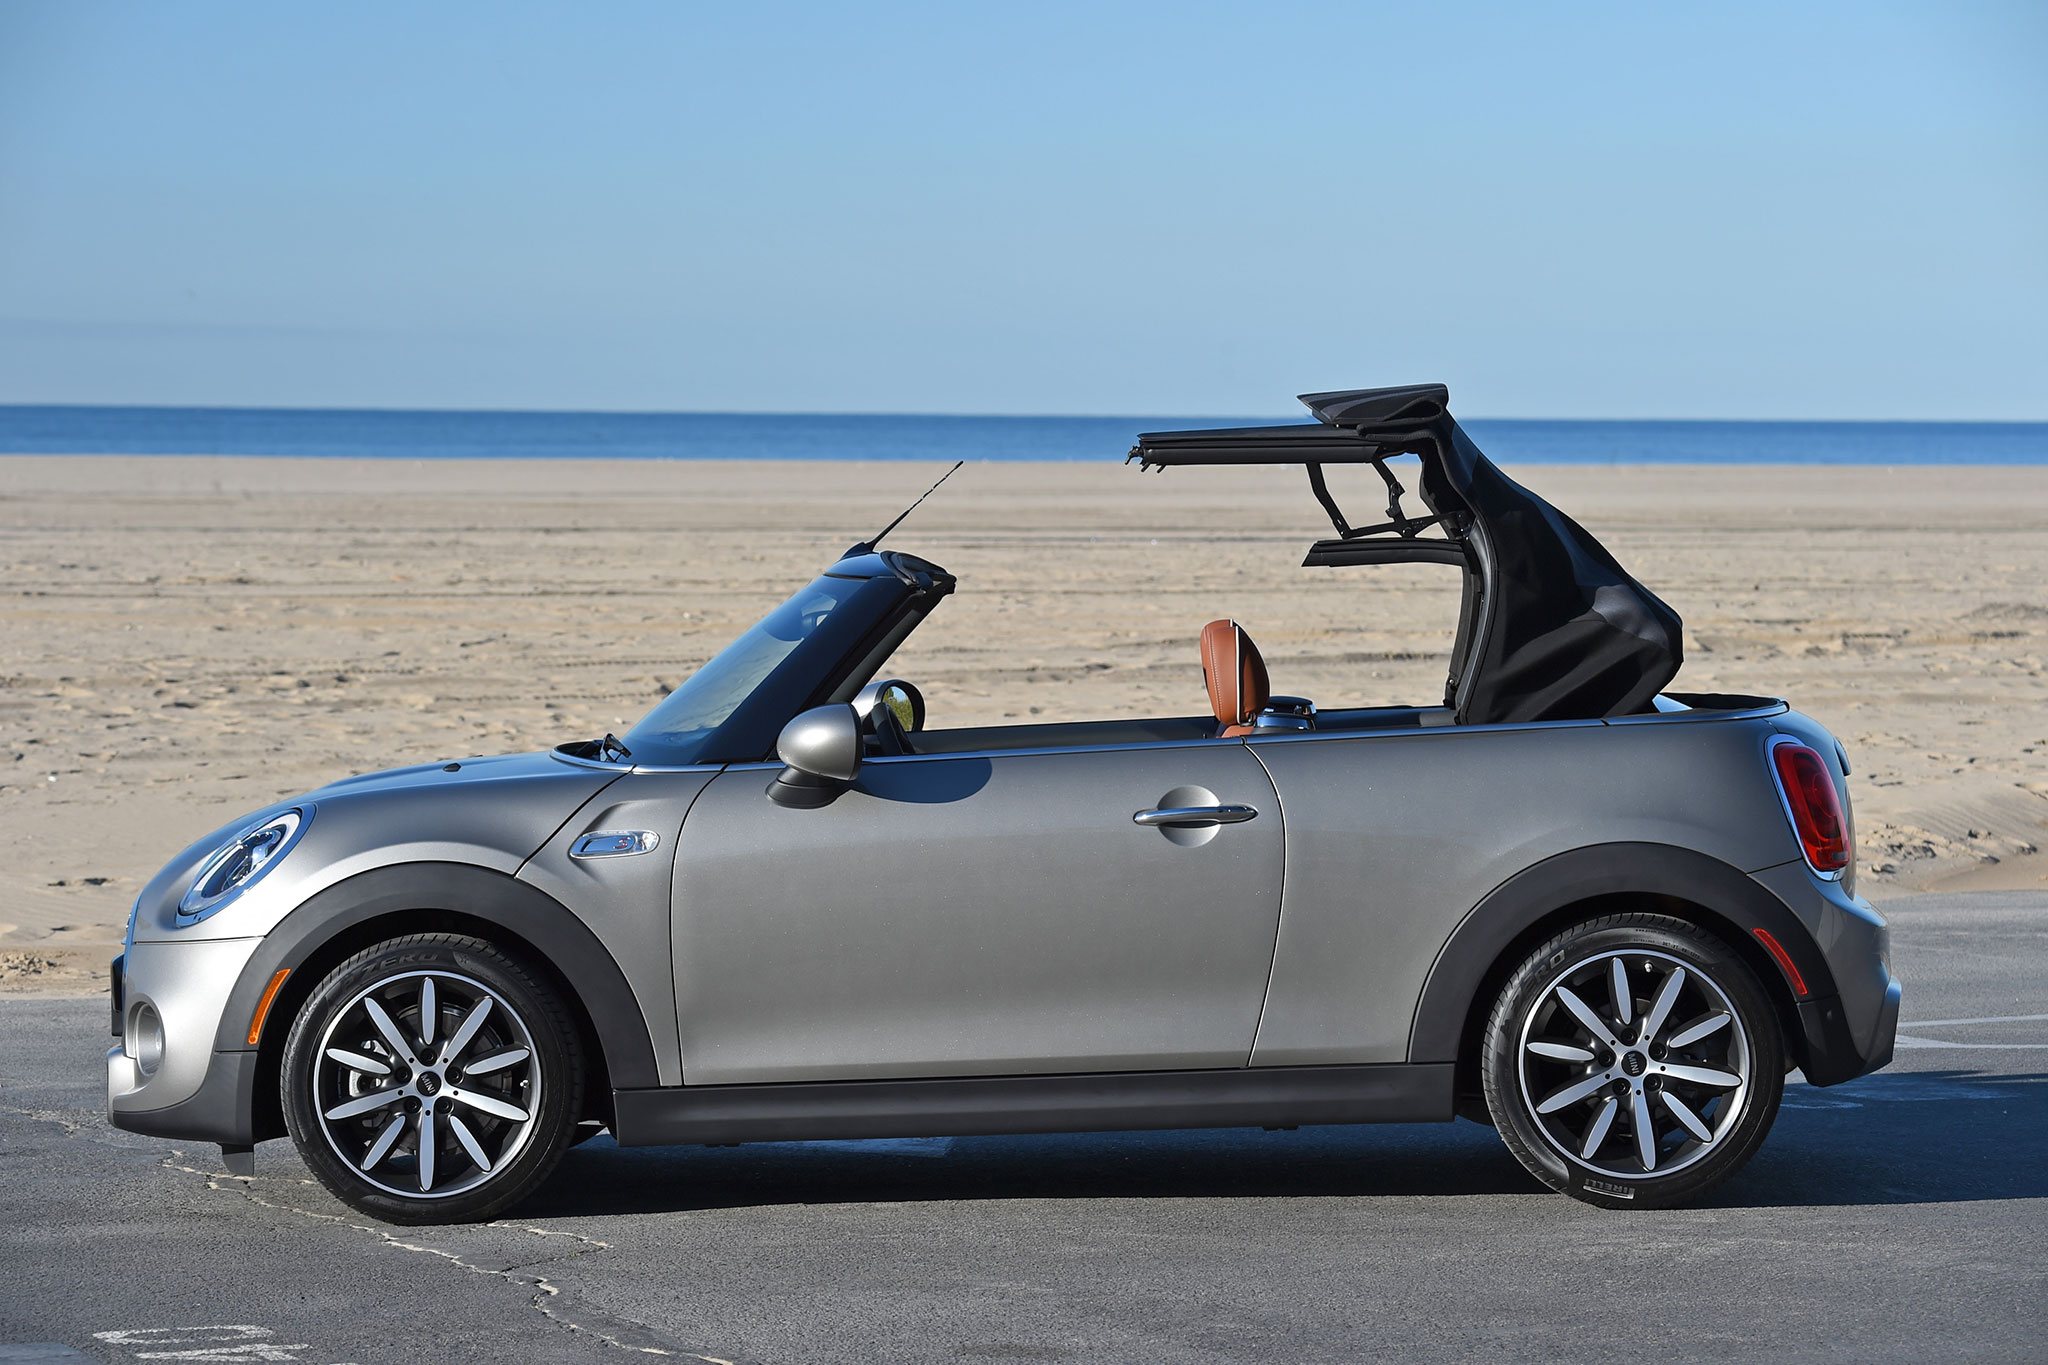 2016 mini cooper s convertible review. Black Bedroom Furniture Sets. Home Design Ideas